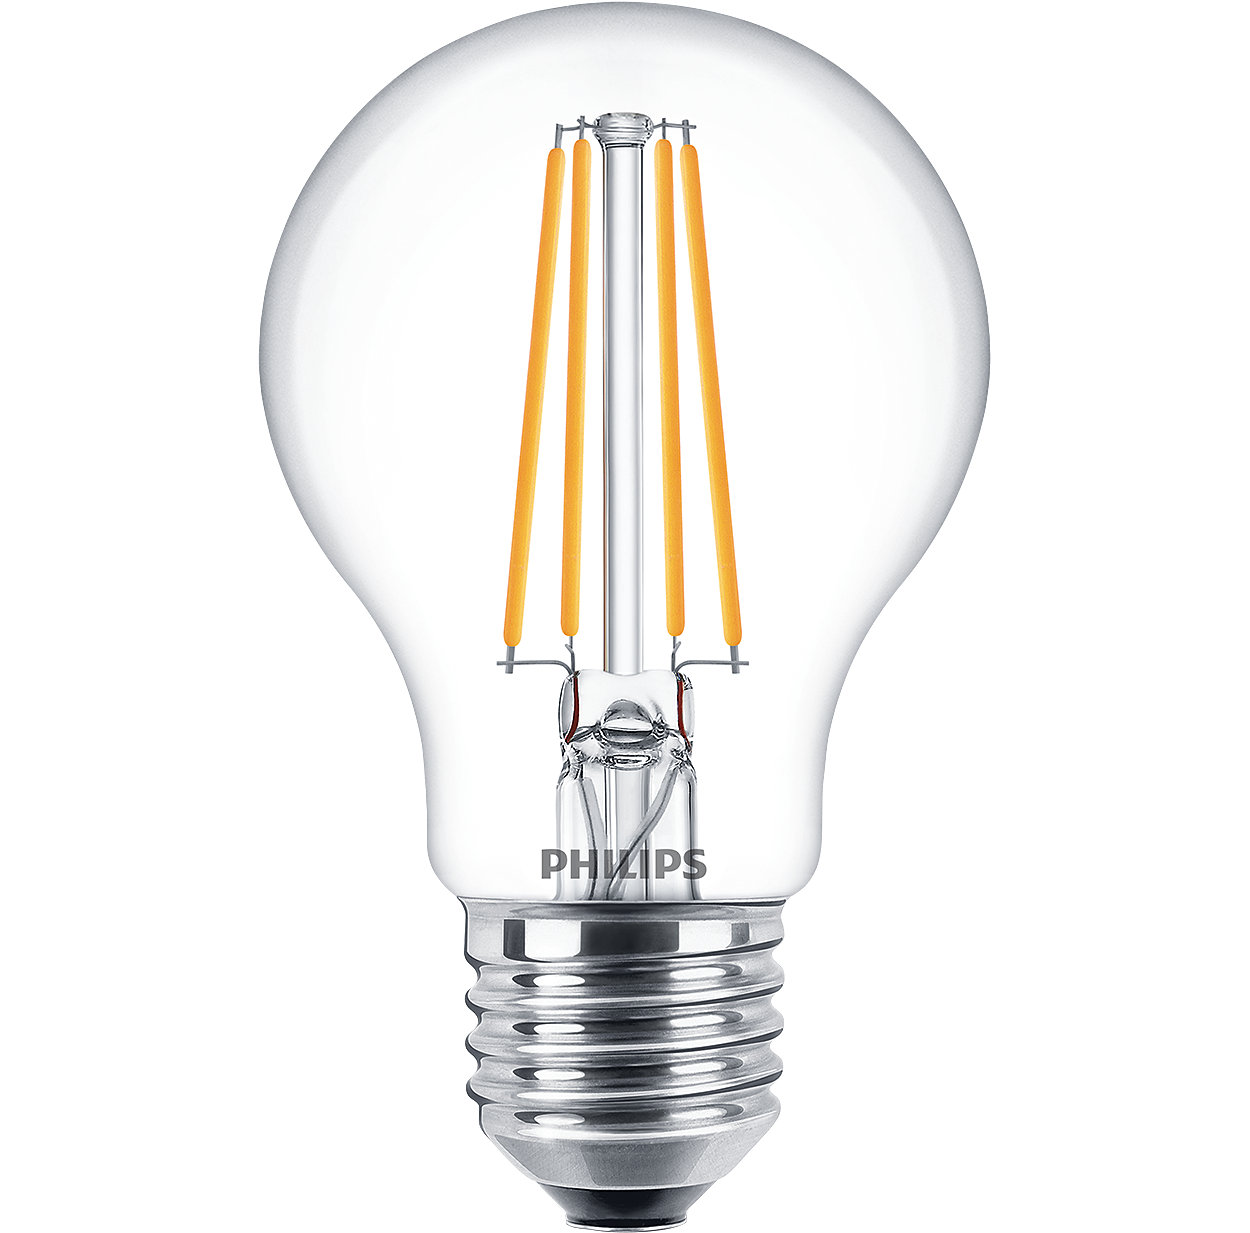 Cla Ledbulb D 8 60w A60 E27 827 Cl Classic Filament Ledbulbs Diagram Of Incandescent Light Bulb Led Lamps For Decorative Lighting